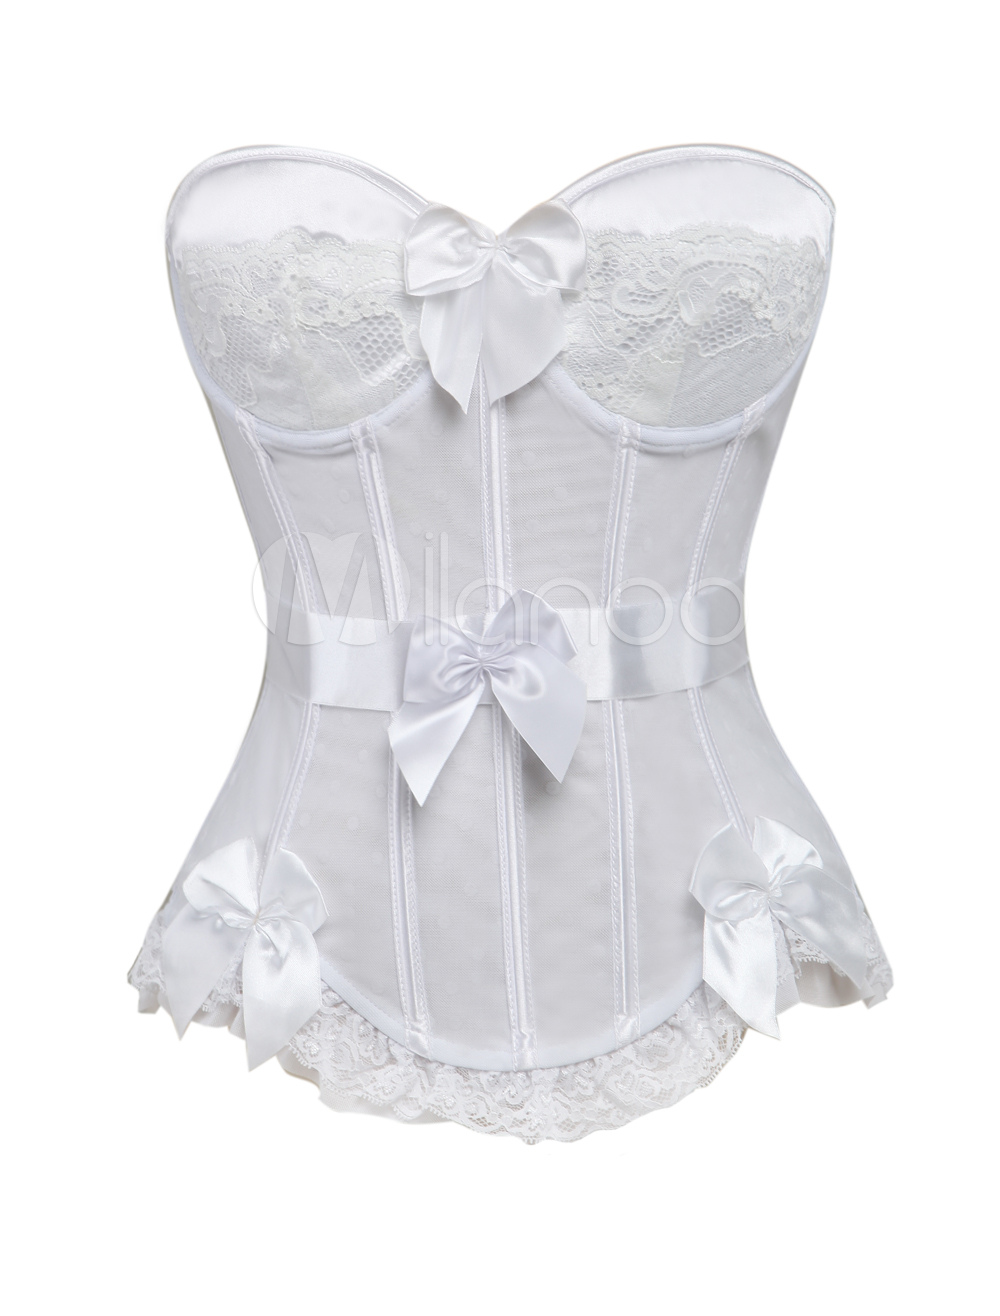 Charming White Bow Tulle Corsets For Women